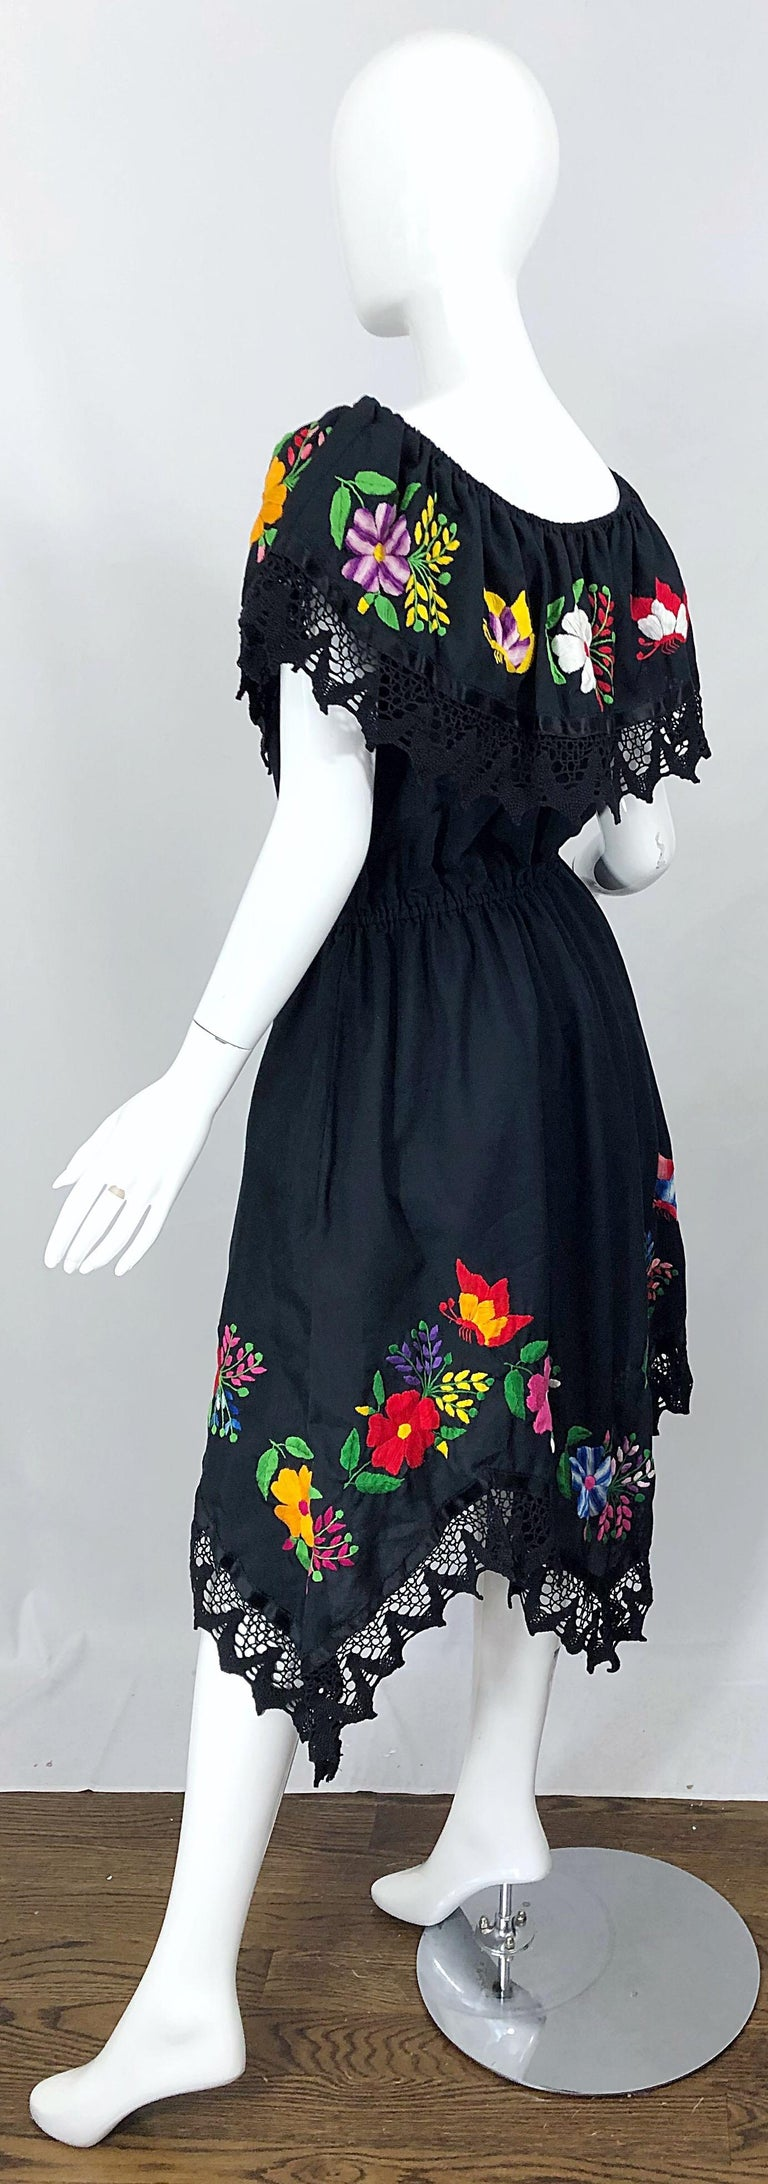 1970s Boho Chic Black Colorful Cotton Embroidered Handkerchief Hem Vintage Dress For Sale 2